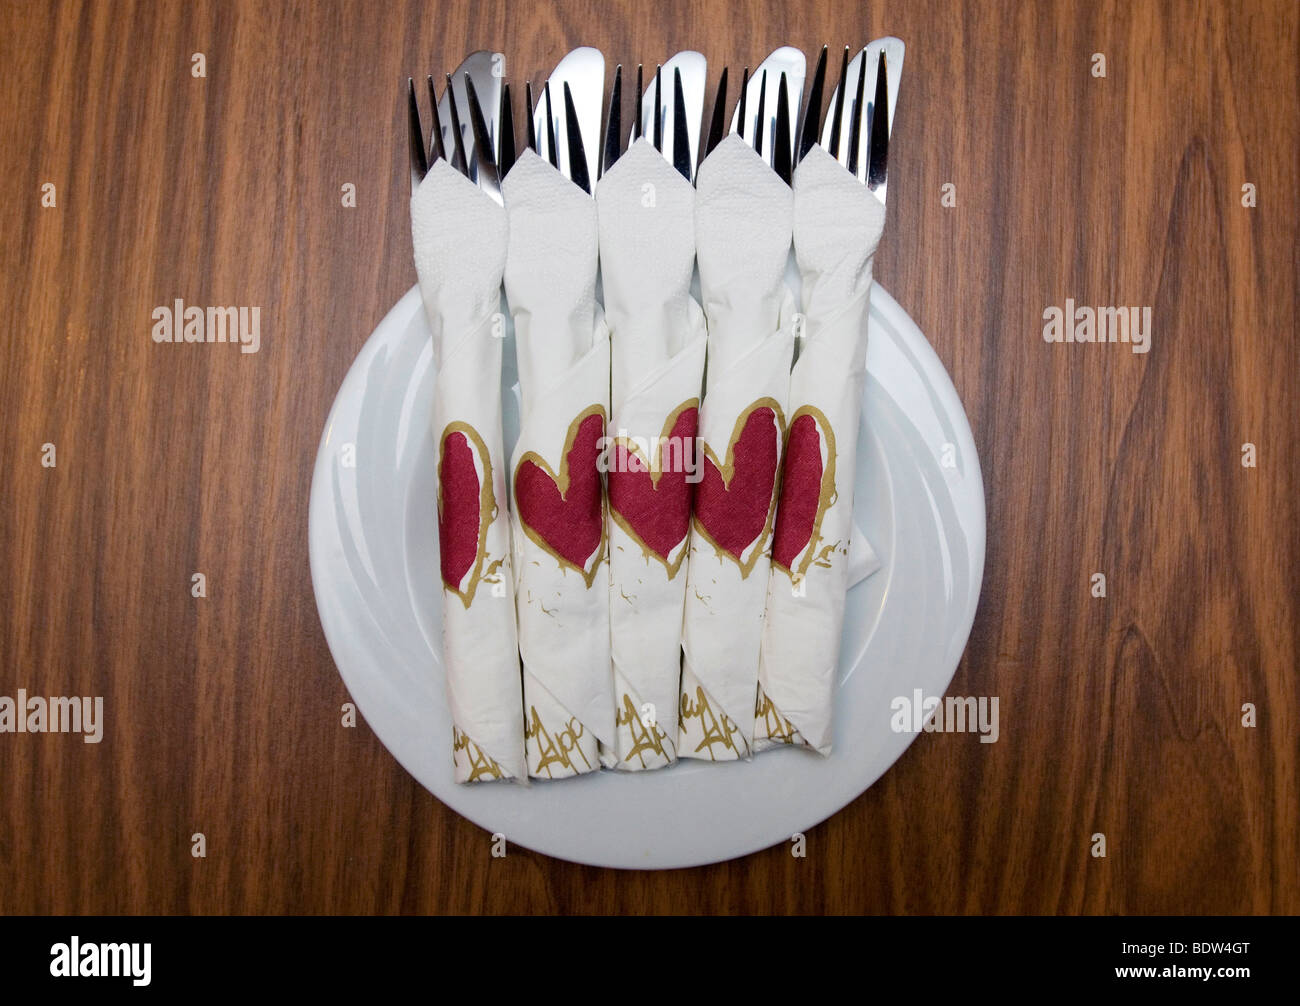 Plate with cutlery - Stock Image